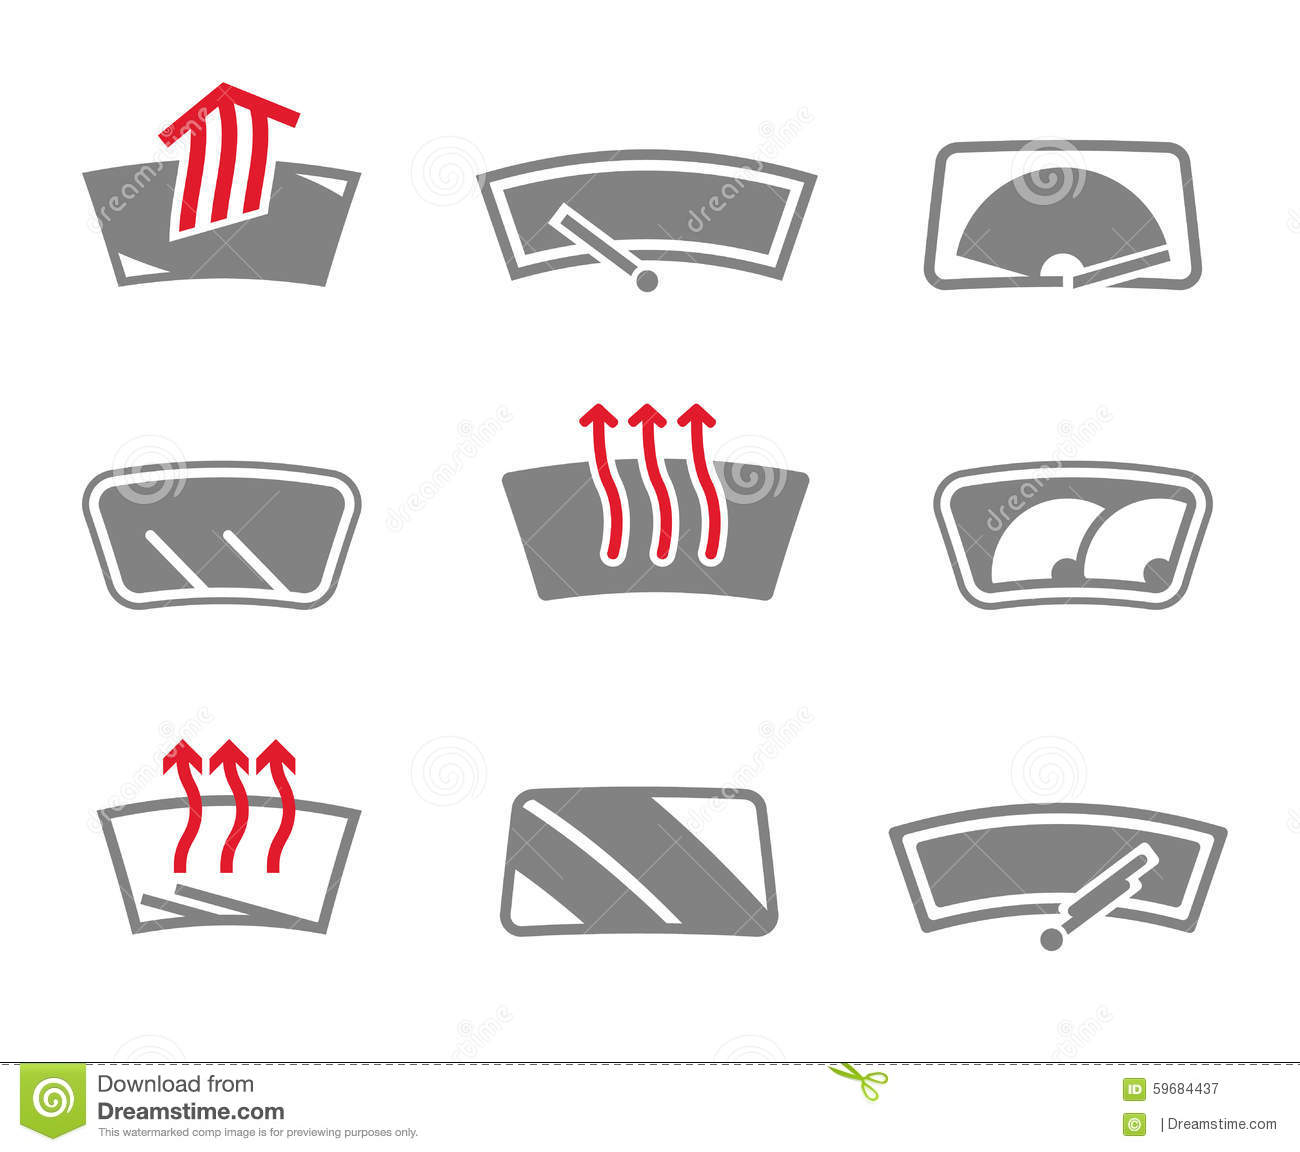 Car Safety System Icons Vector Illustration